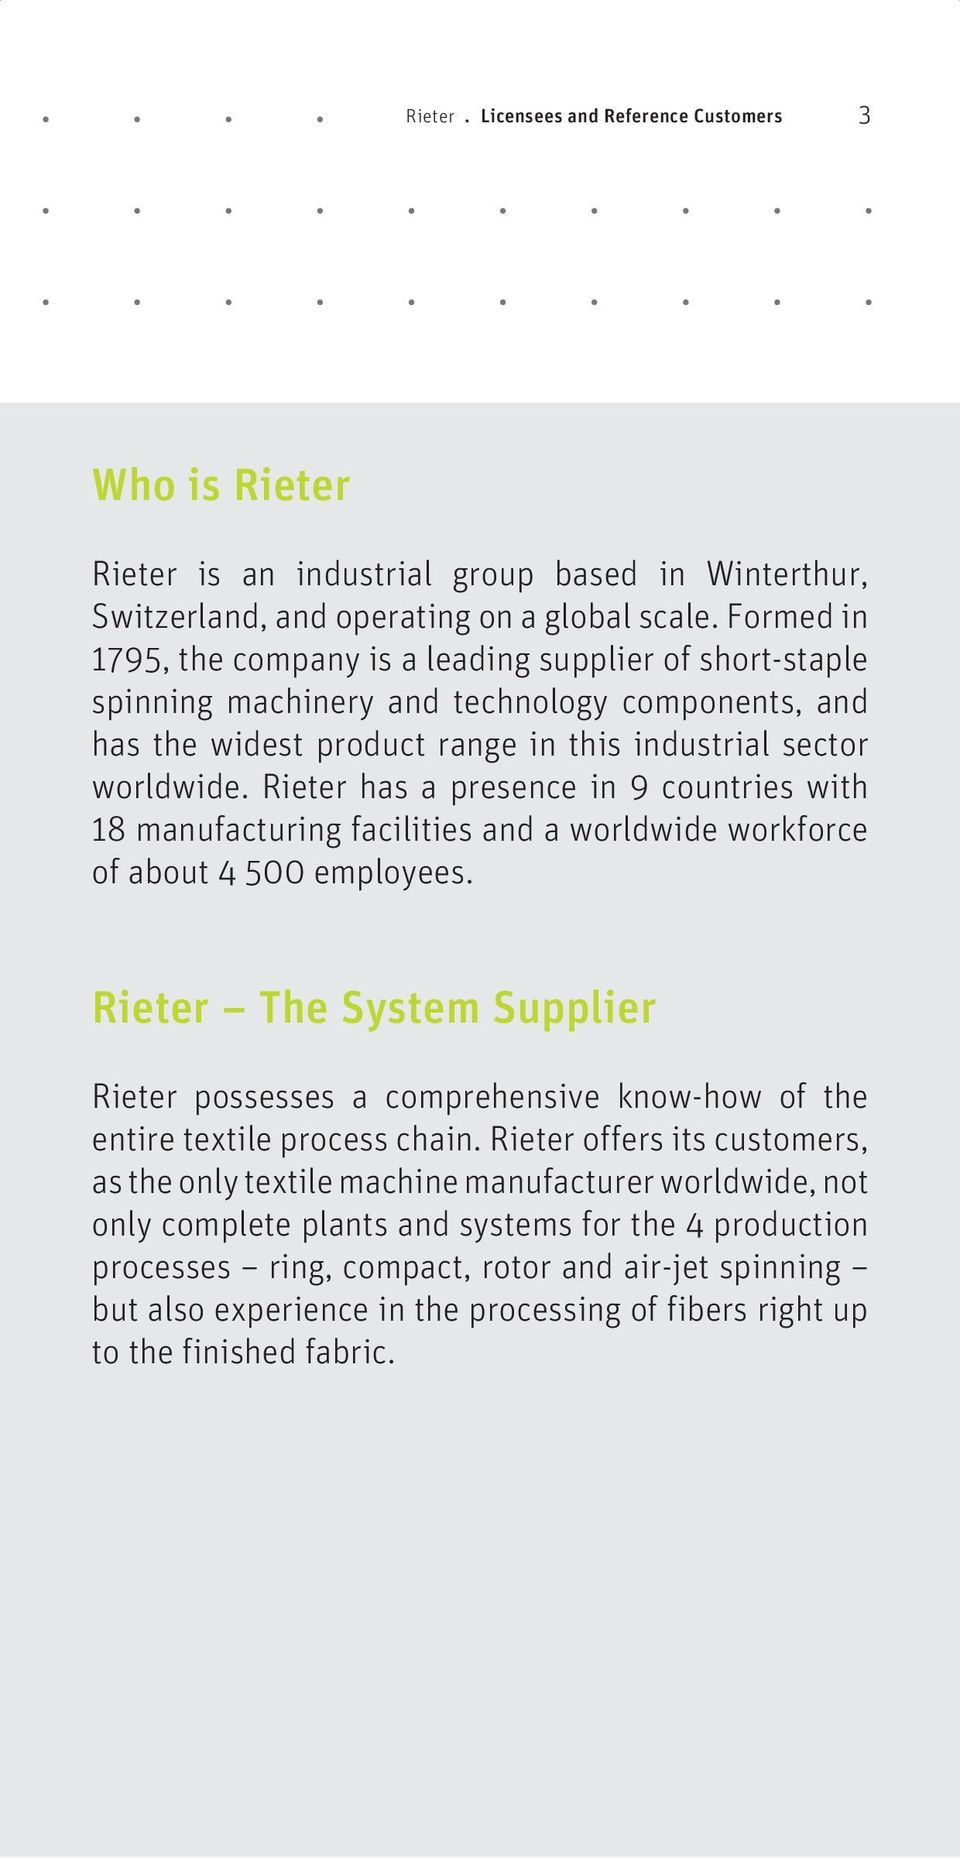 Rieter has a presence in 9 countries with 18 manufacturing facilities and a worldwide workforce of about 4 500 employees.